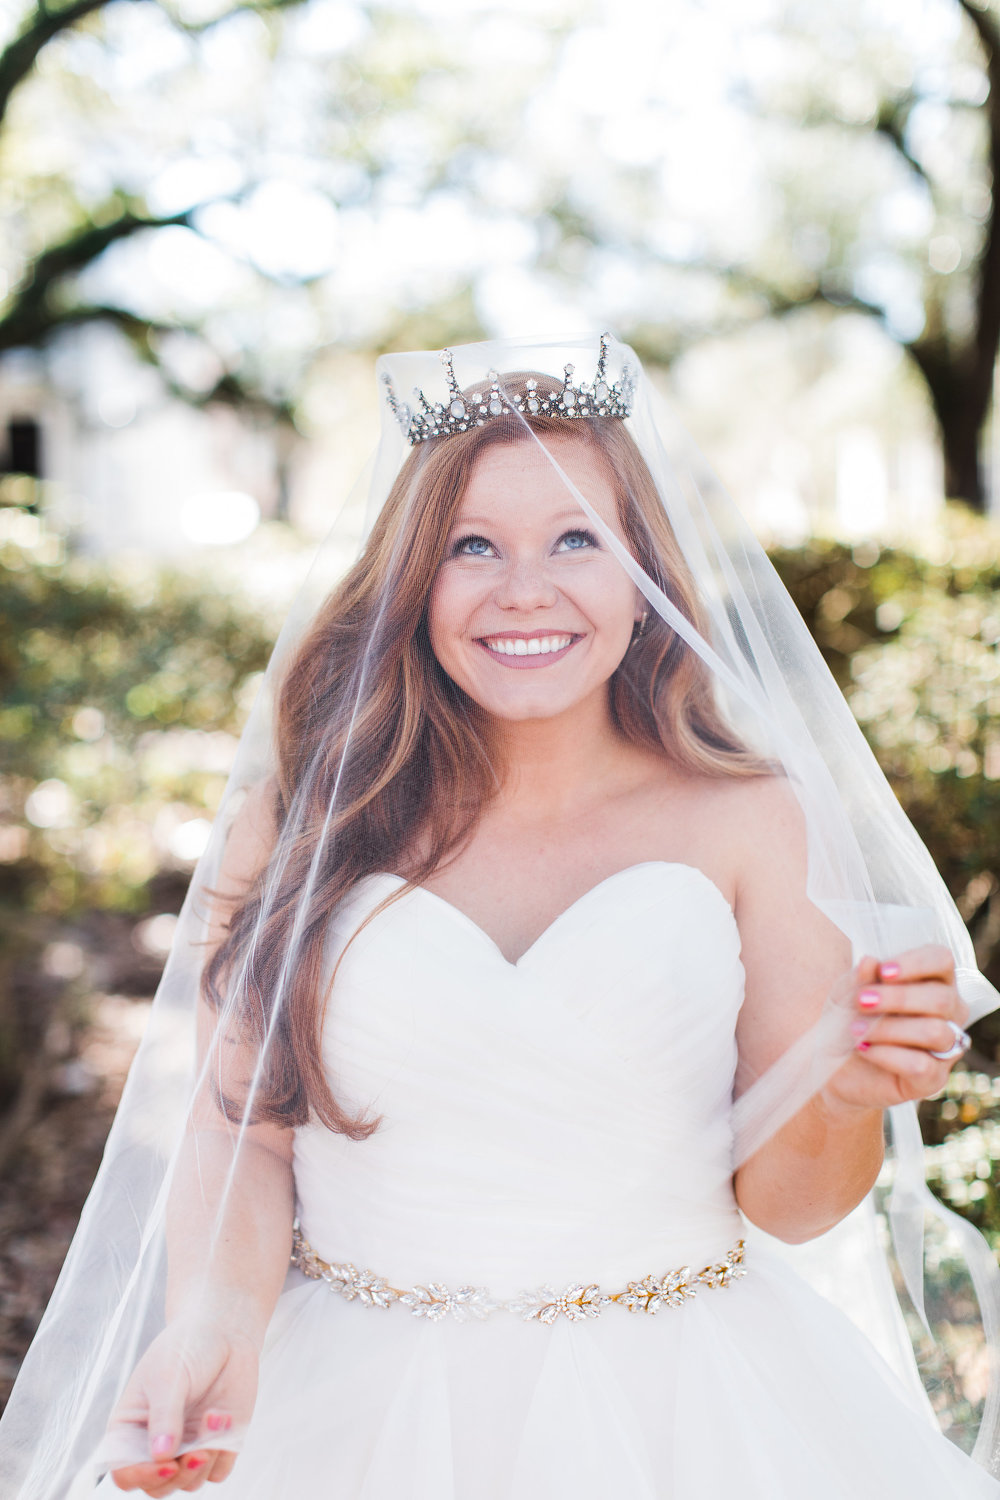 apt-b-photography-mary-elizabeths-bridal-boutique-adele-amelia-accessories-morilee-5504-savannah-bridal-boutique-savannah-weddings-savannah-wedding-photographer-savannah-bridal-gowns-savannah-wedding-dresses-historic-savannah-wedding-20.jpg